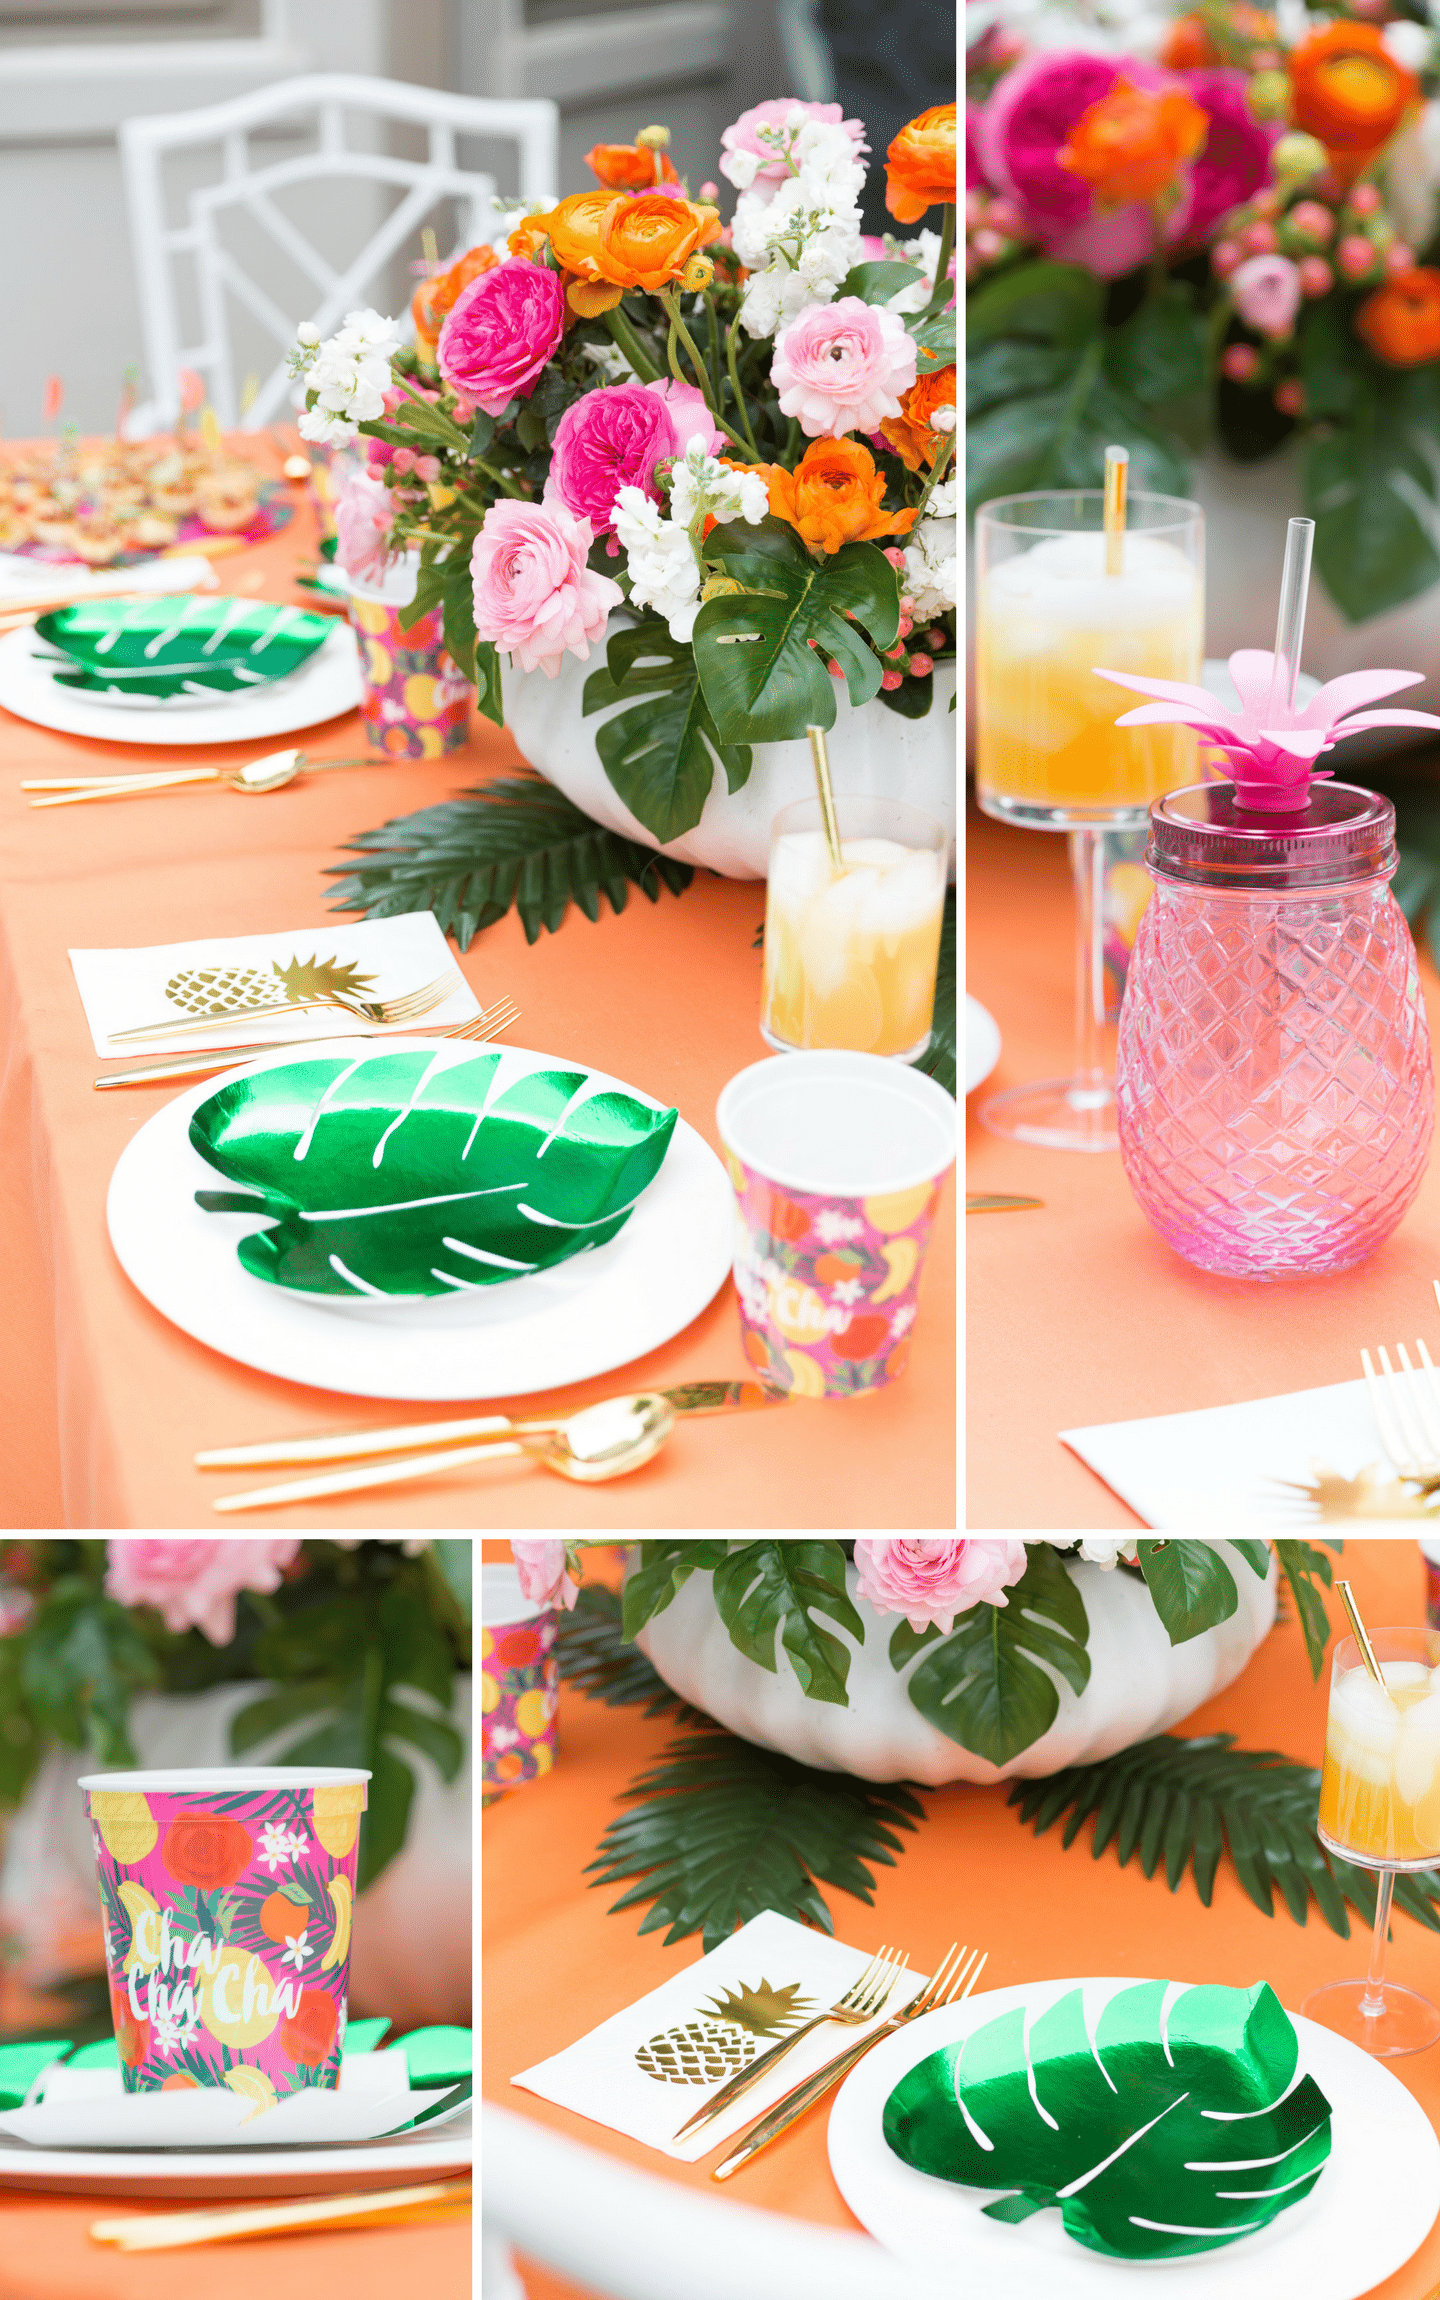 Tablescape tips for hosting a tropical soiree!